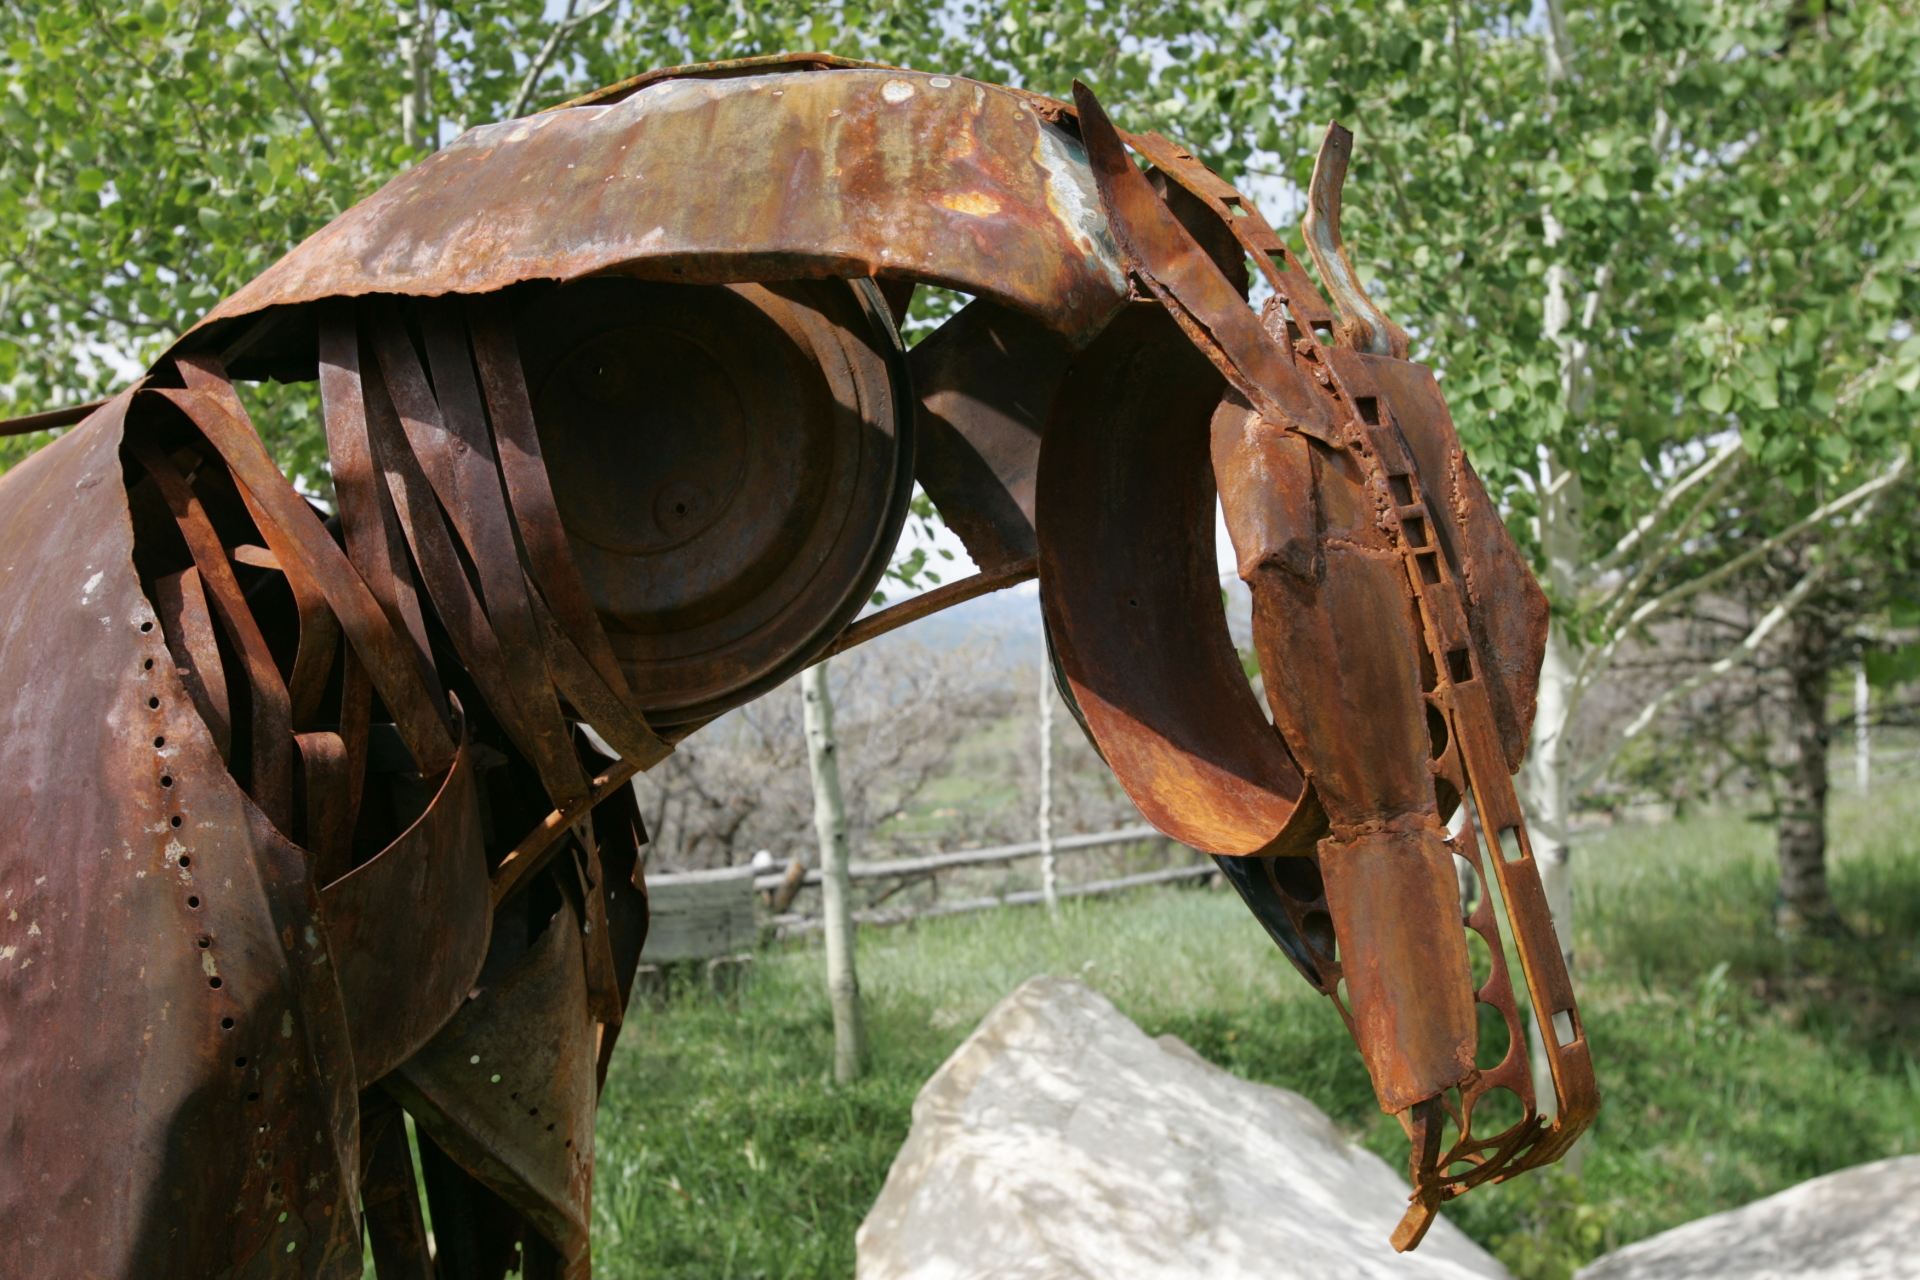 Life size steel horse sculpture, recycled steel, Rusty Croft, Carmel California